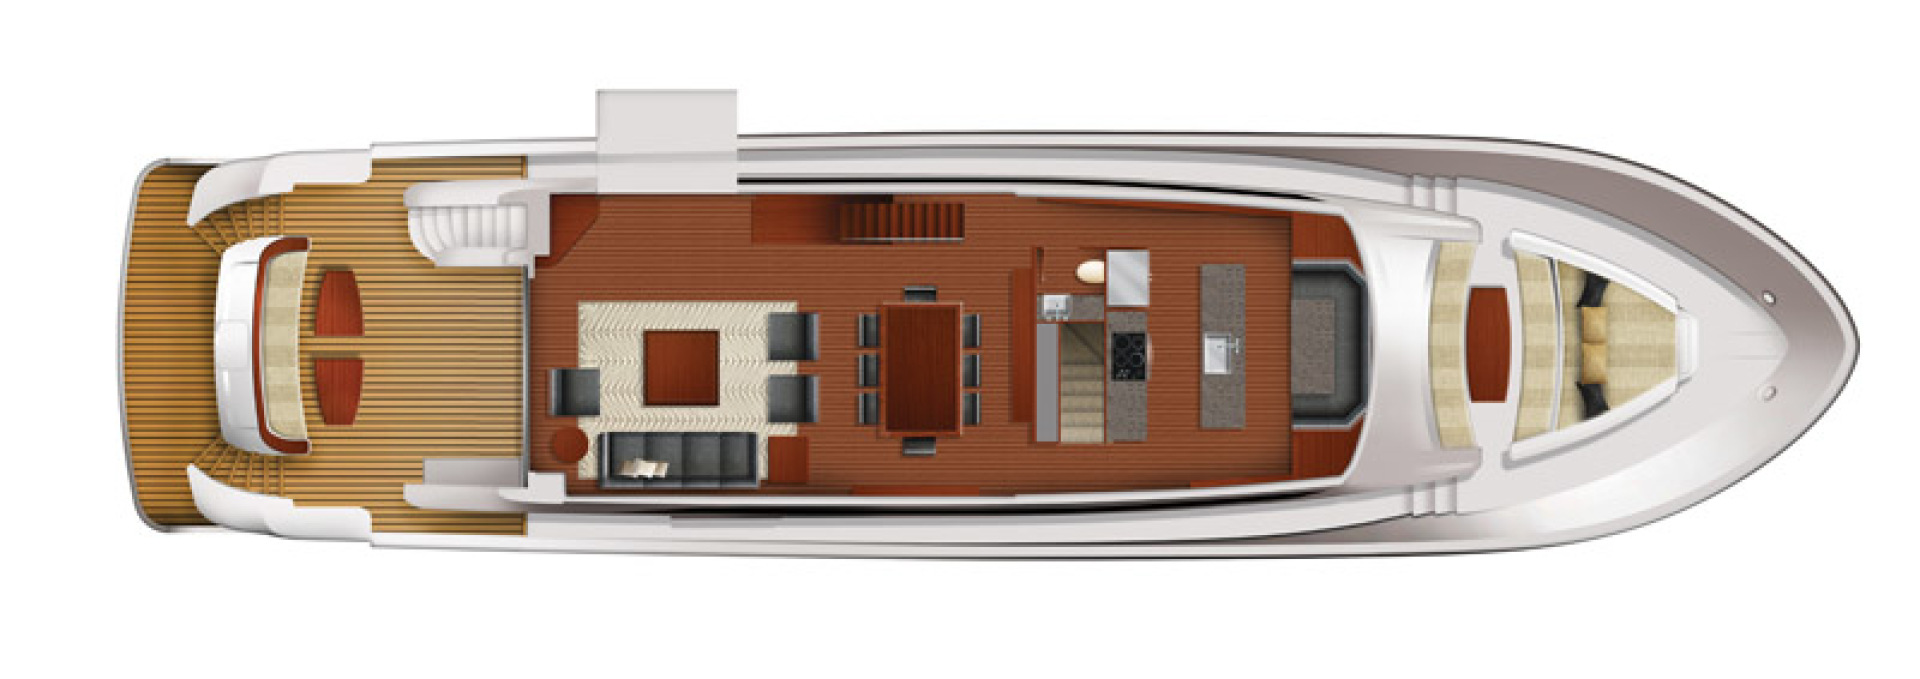 Hatteras-M90 Panacera 2020 -Cape May-New Jersey-United States-Layout Drawing-1084080 | Thumbnail